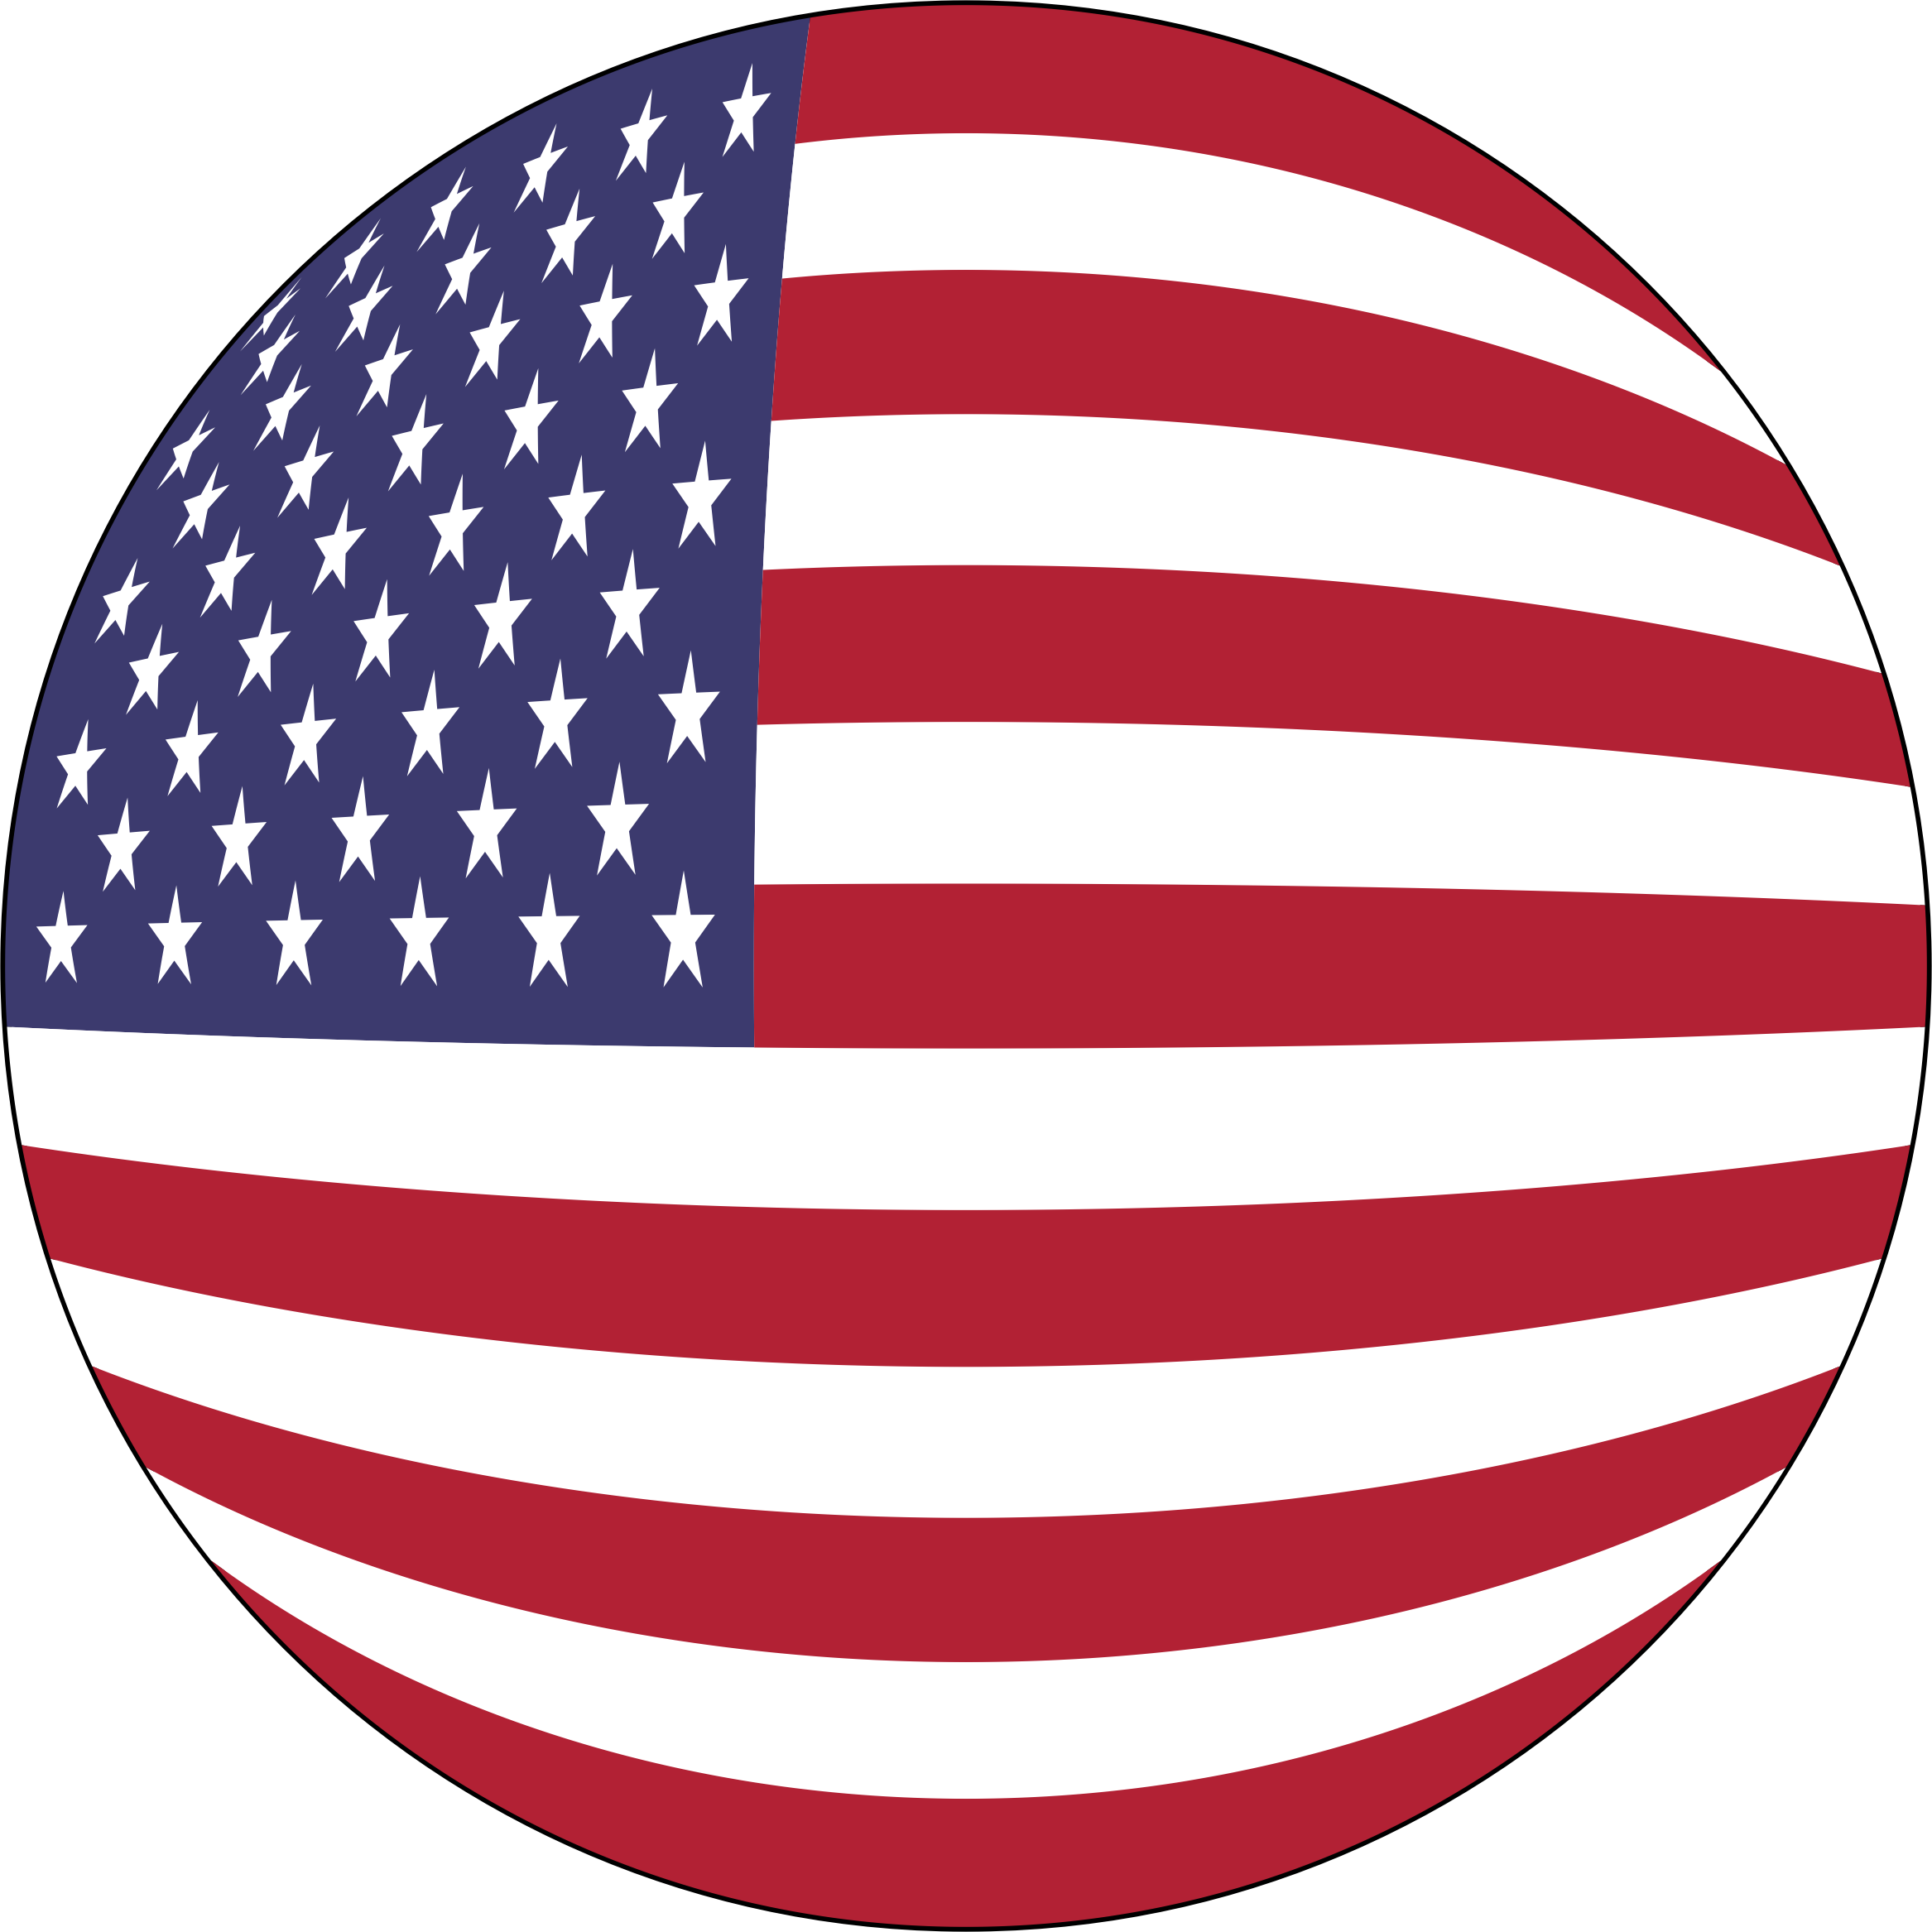 American Flag Orb With Stroke by GDJ